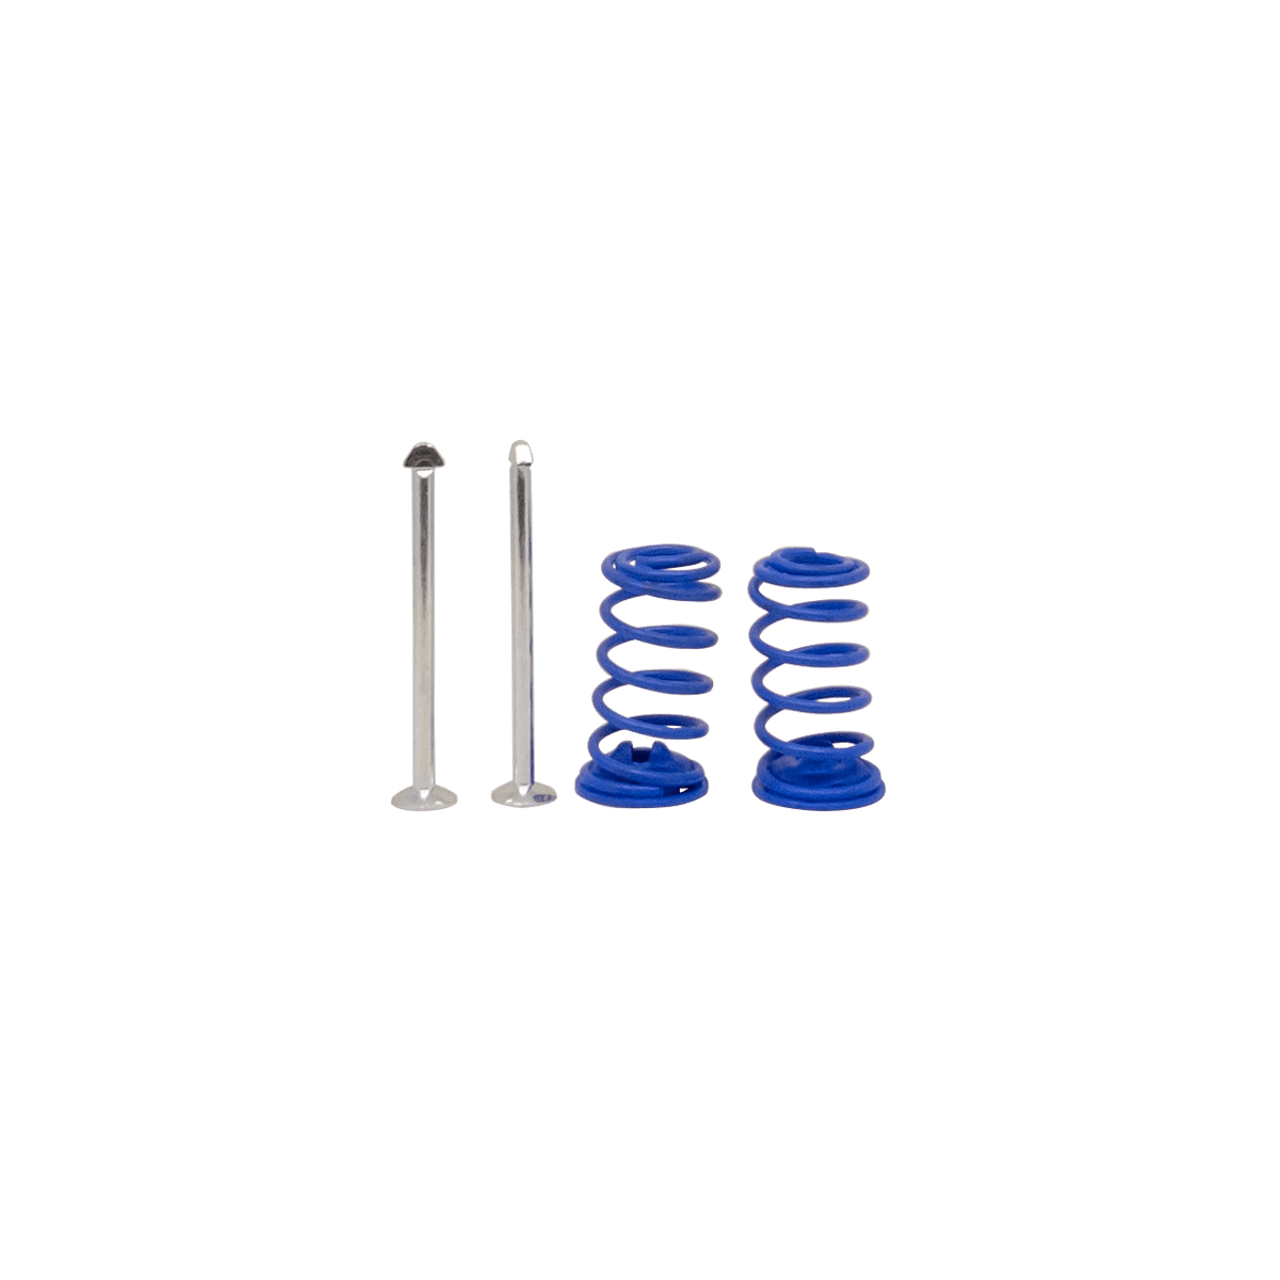 200 --- Shoe and Lining Kit for 3,500 lb Capacity Hayes Electric Brake